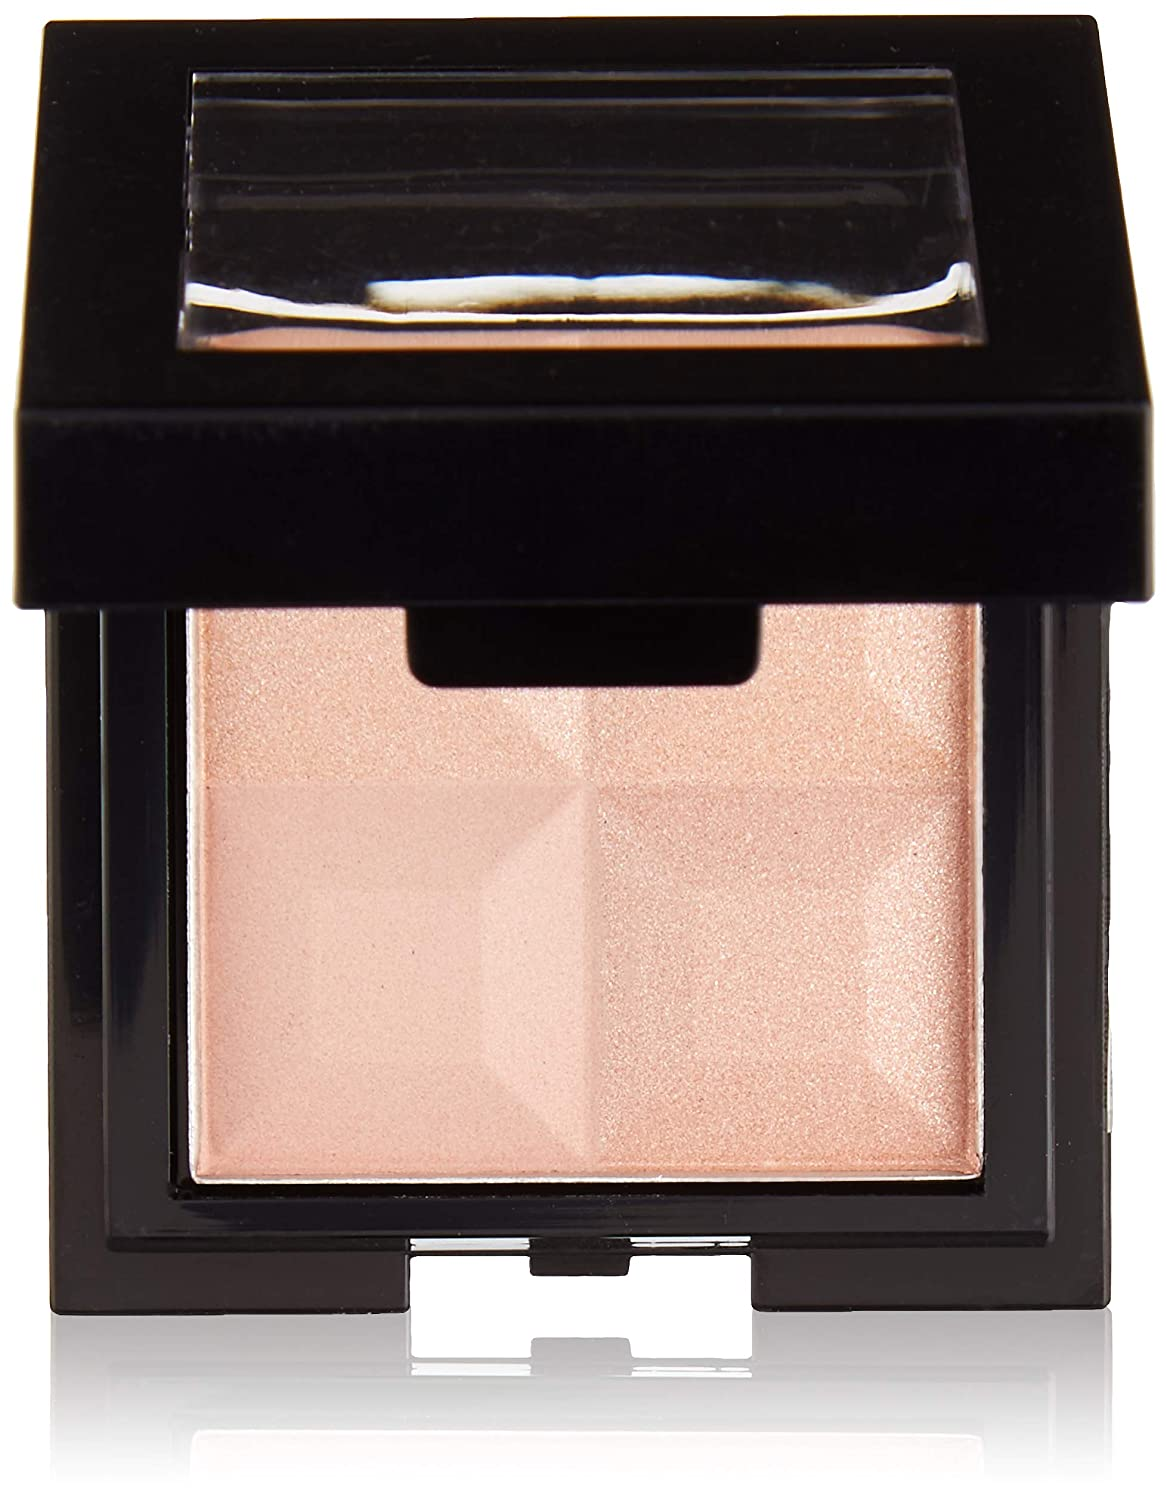 Marcelle Monochromatic Eyeshadow Quad, Nearly Nude, 4.60 Gram Marcelle group - Beauty 167912